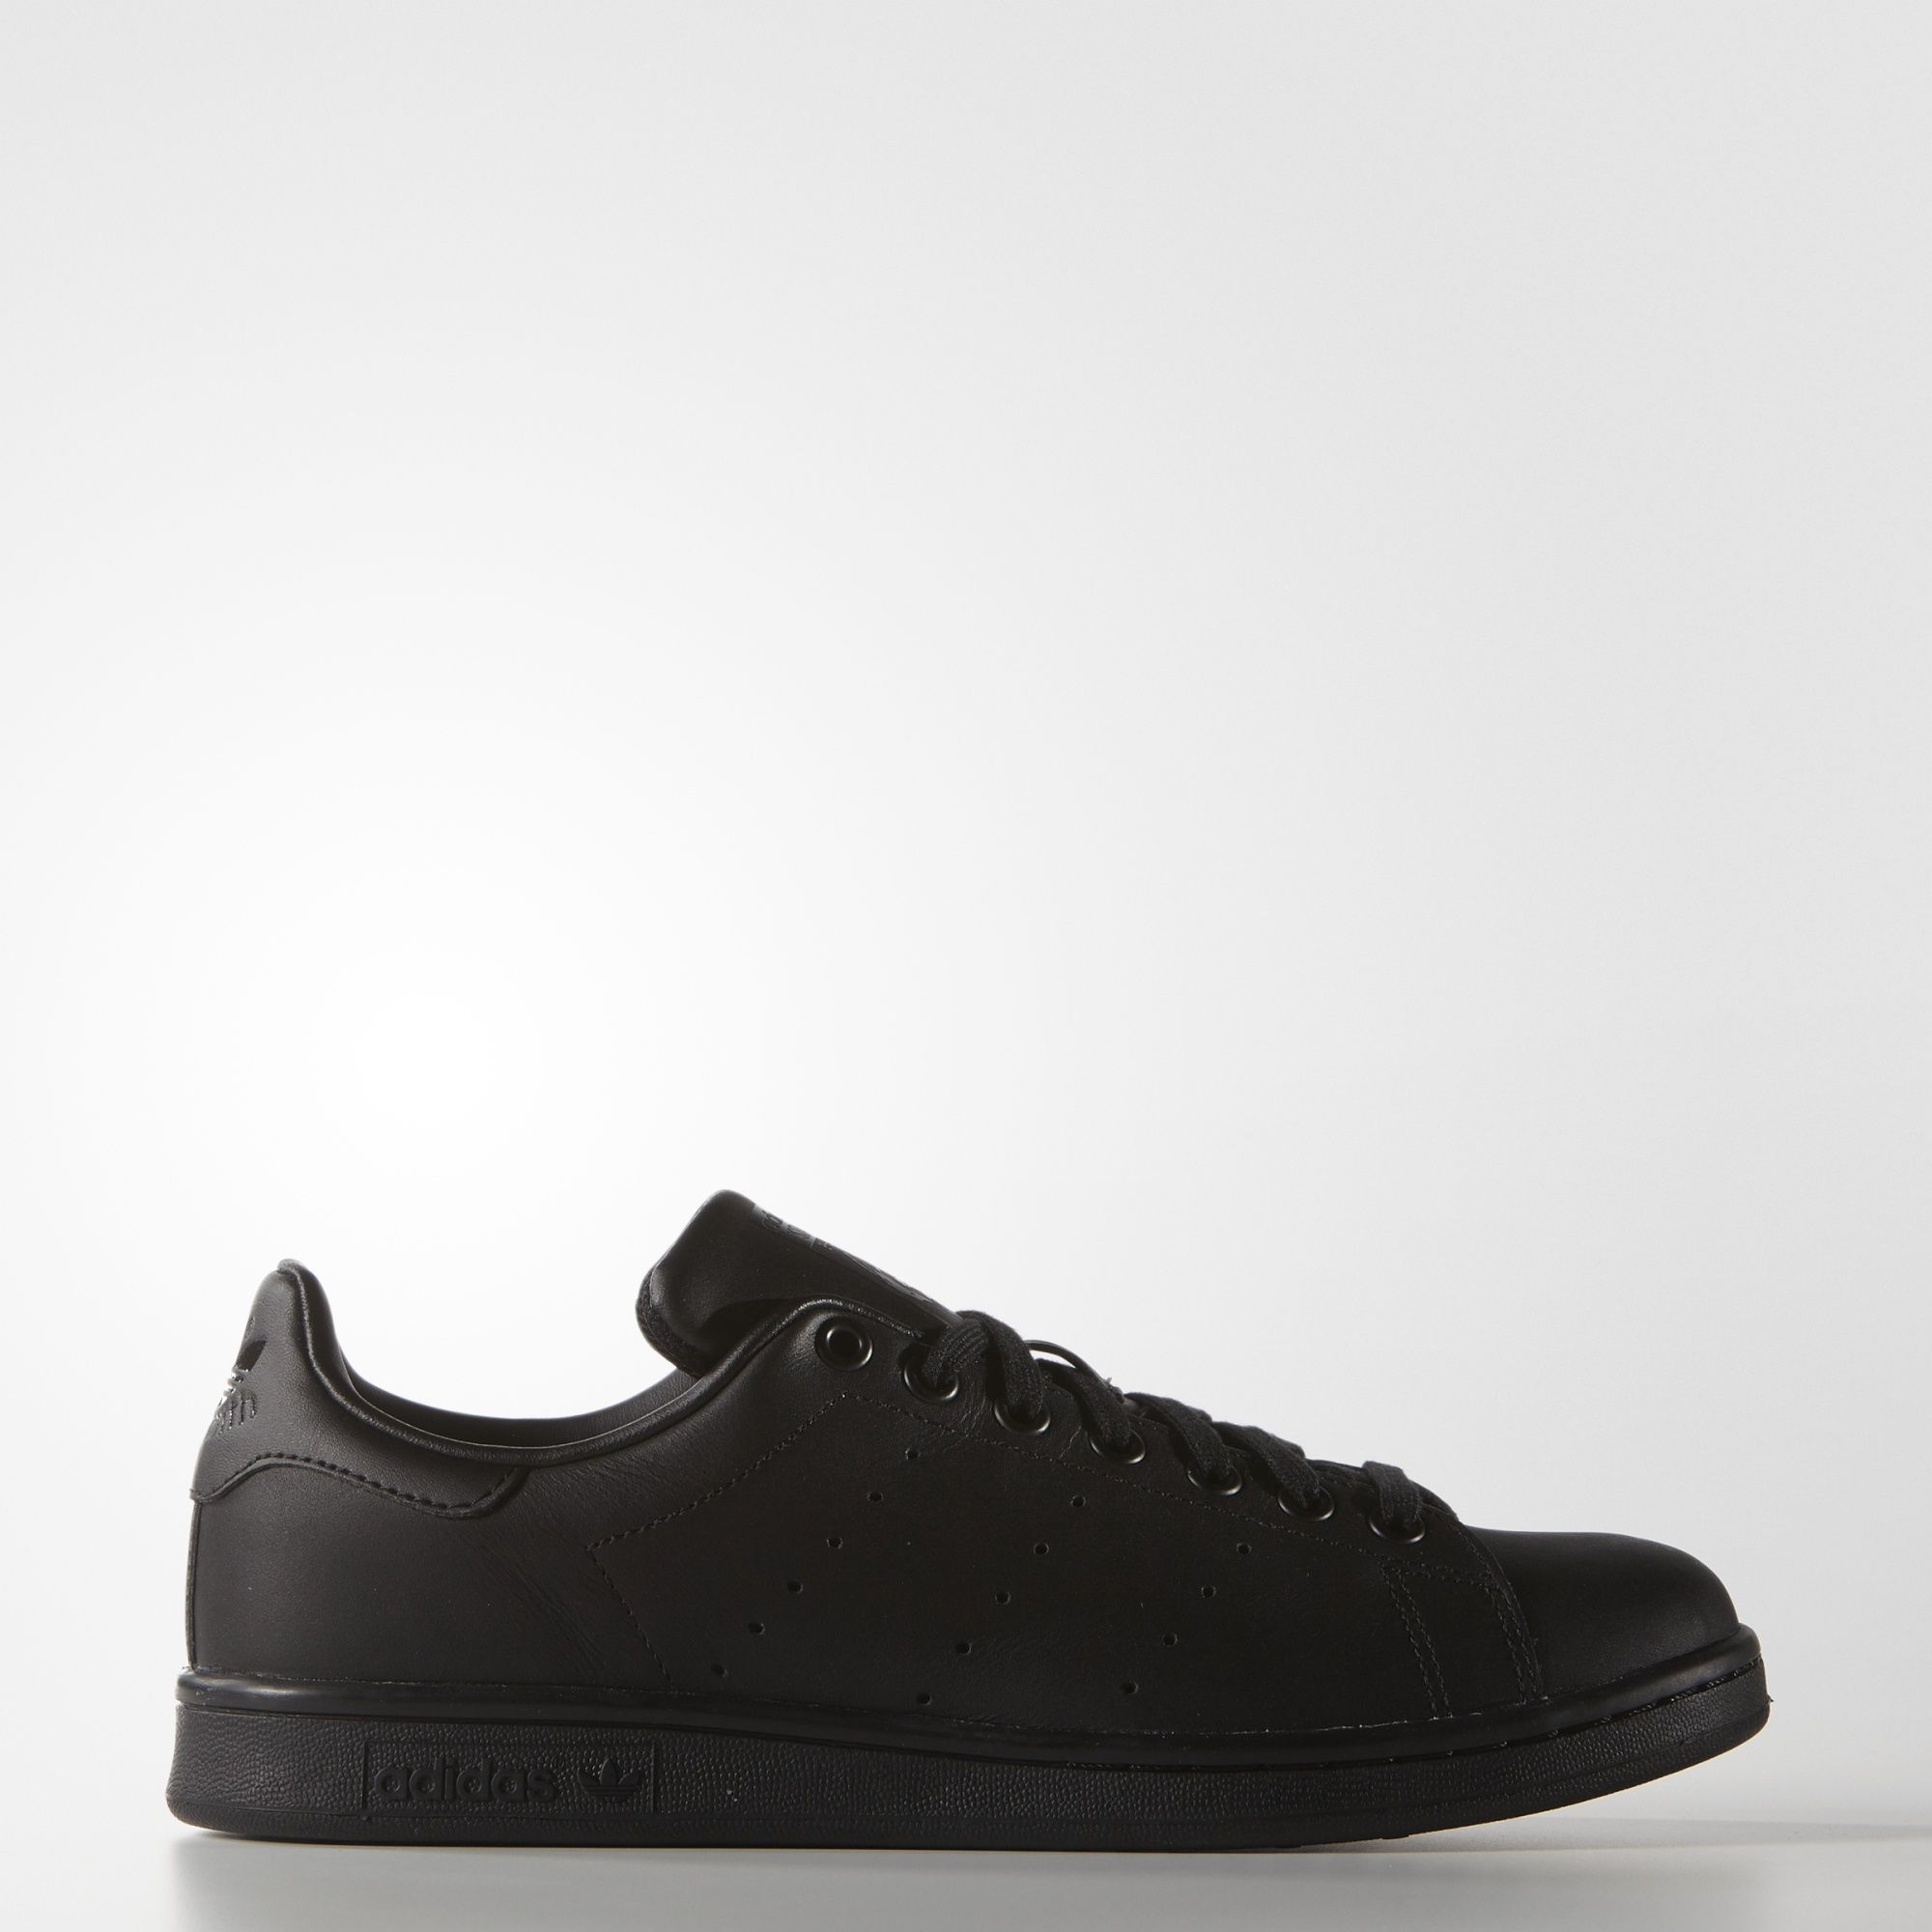 adidas stan smith homme, adidas - Chaussure Stan Smith Core Black M20327